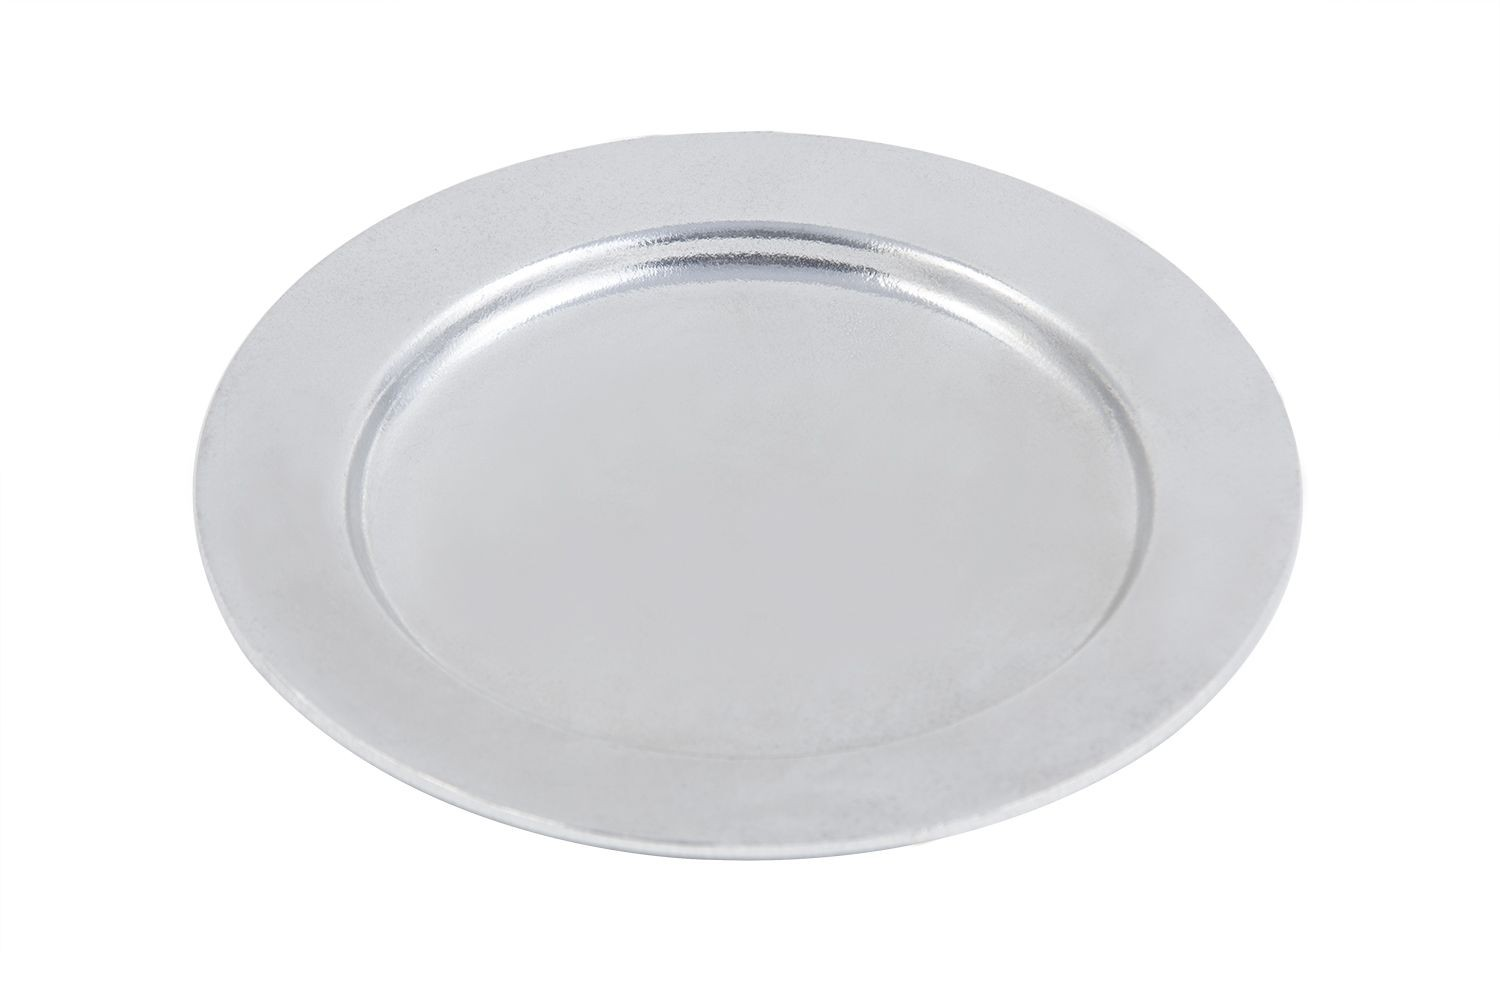 "Bon Chef 1042P Contemporary Salad Plate, Pewter Glo 8"" Dia., Set of 12"